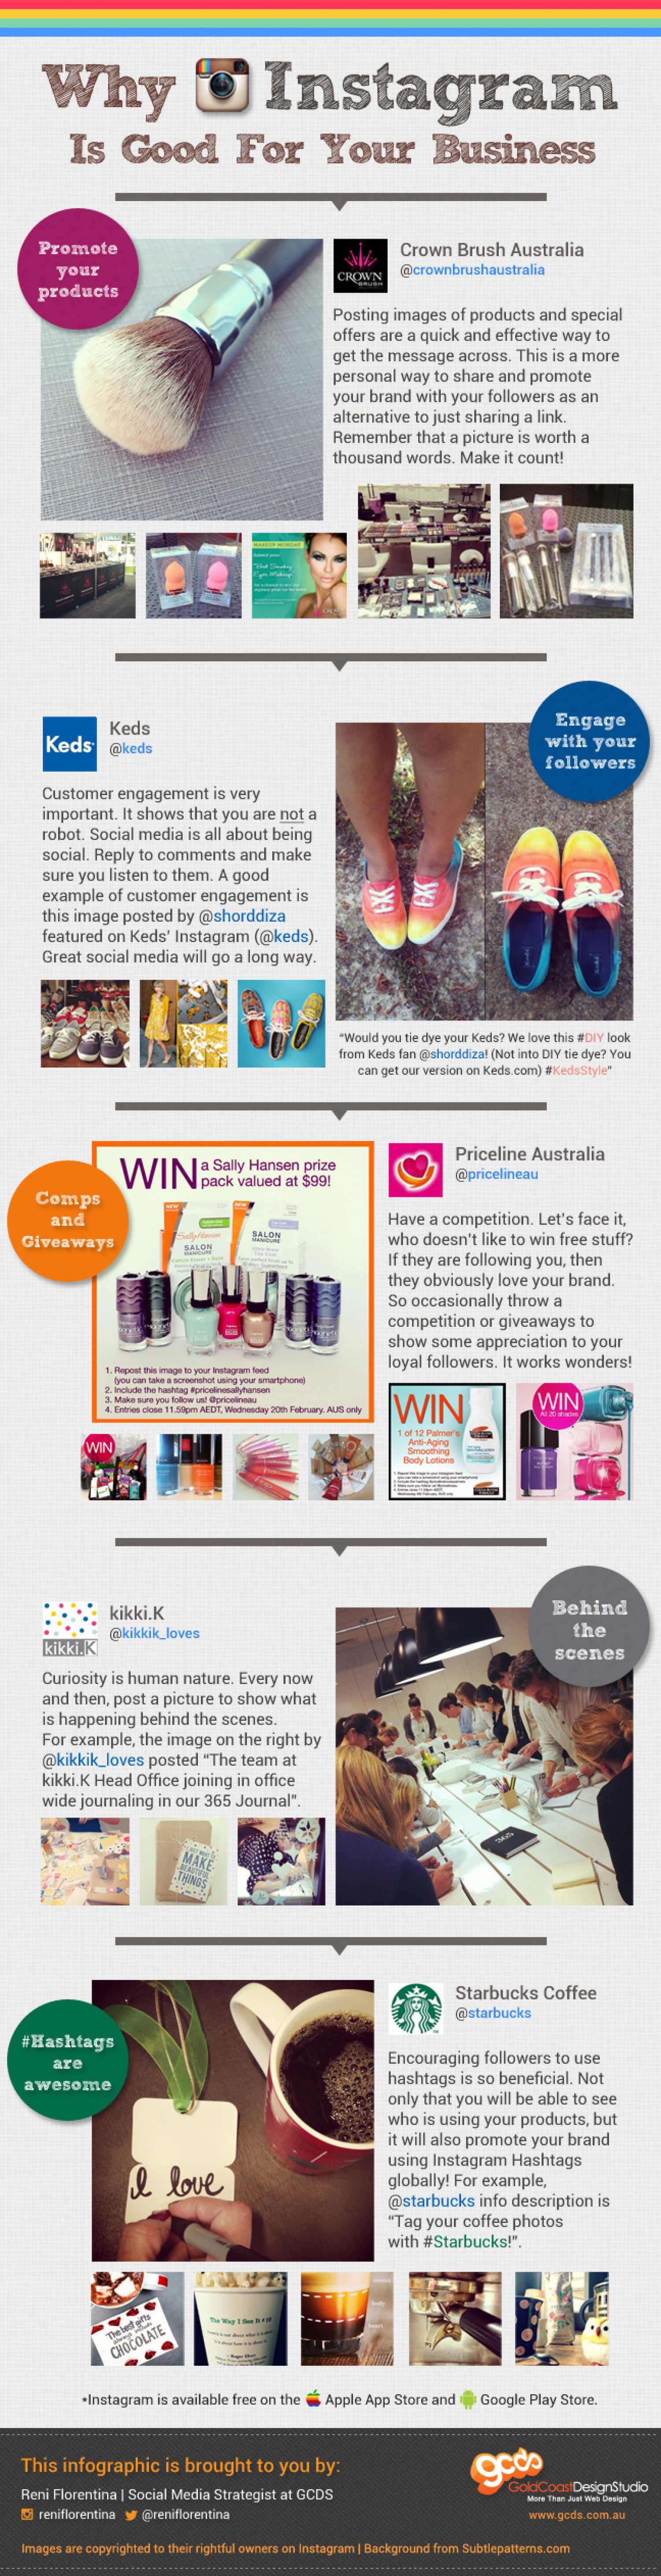 Why Instagram is good for your business? Infographic